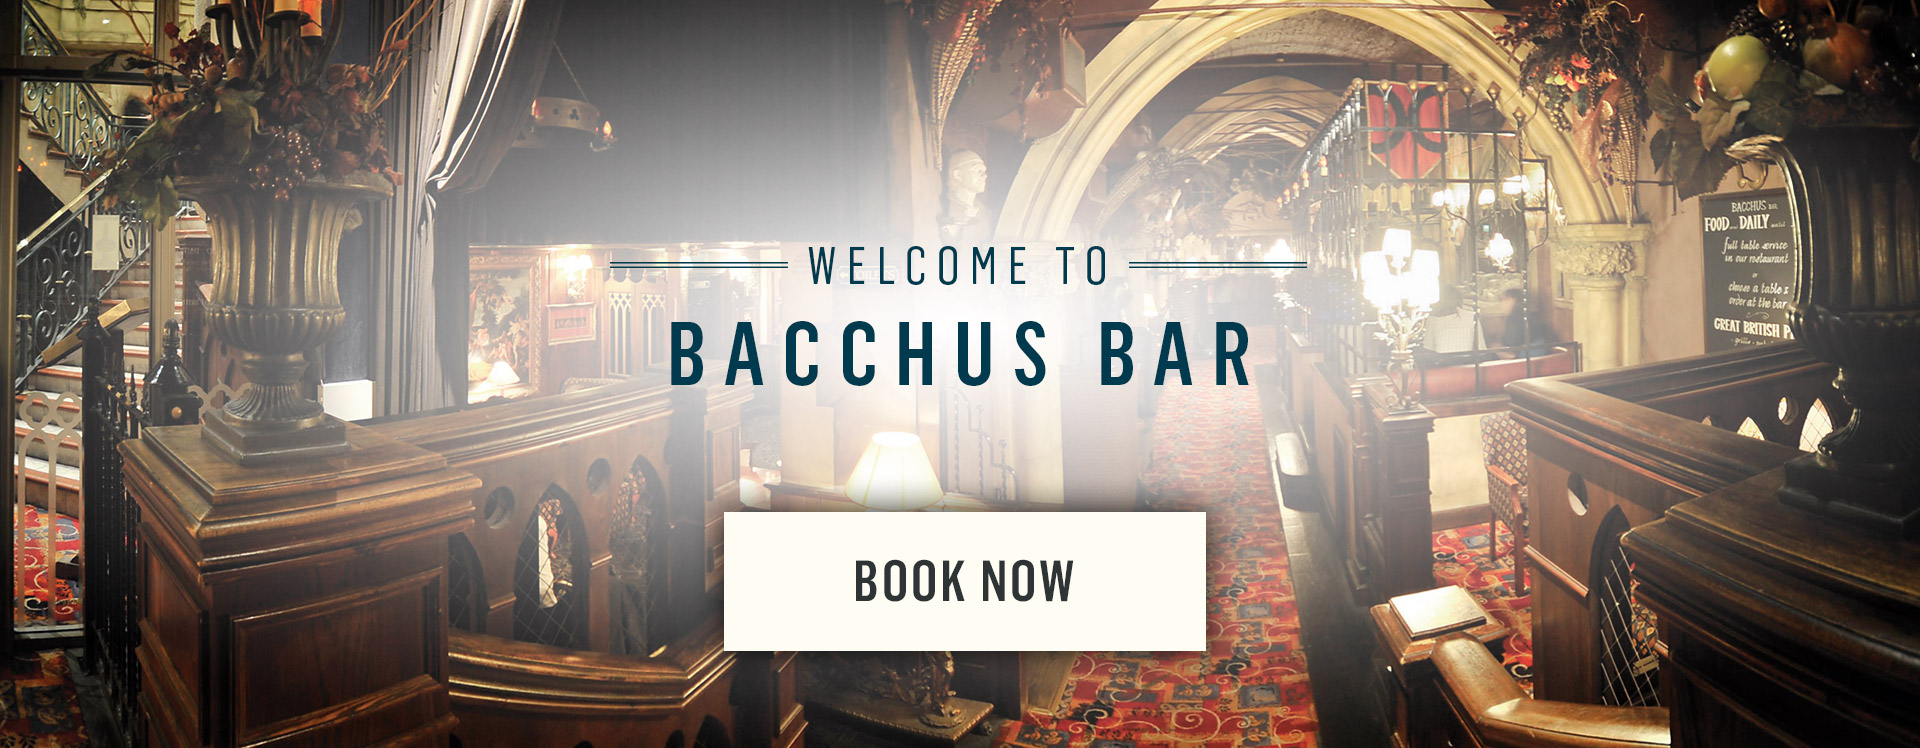 Welcome to Bacchus Bar - Book Now